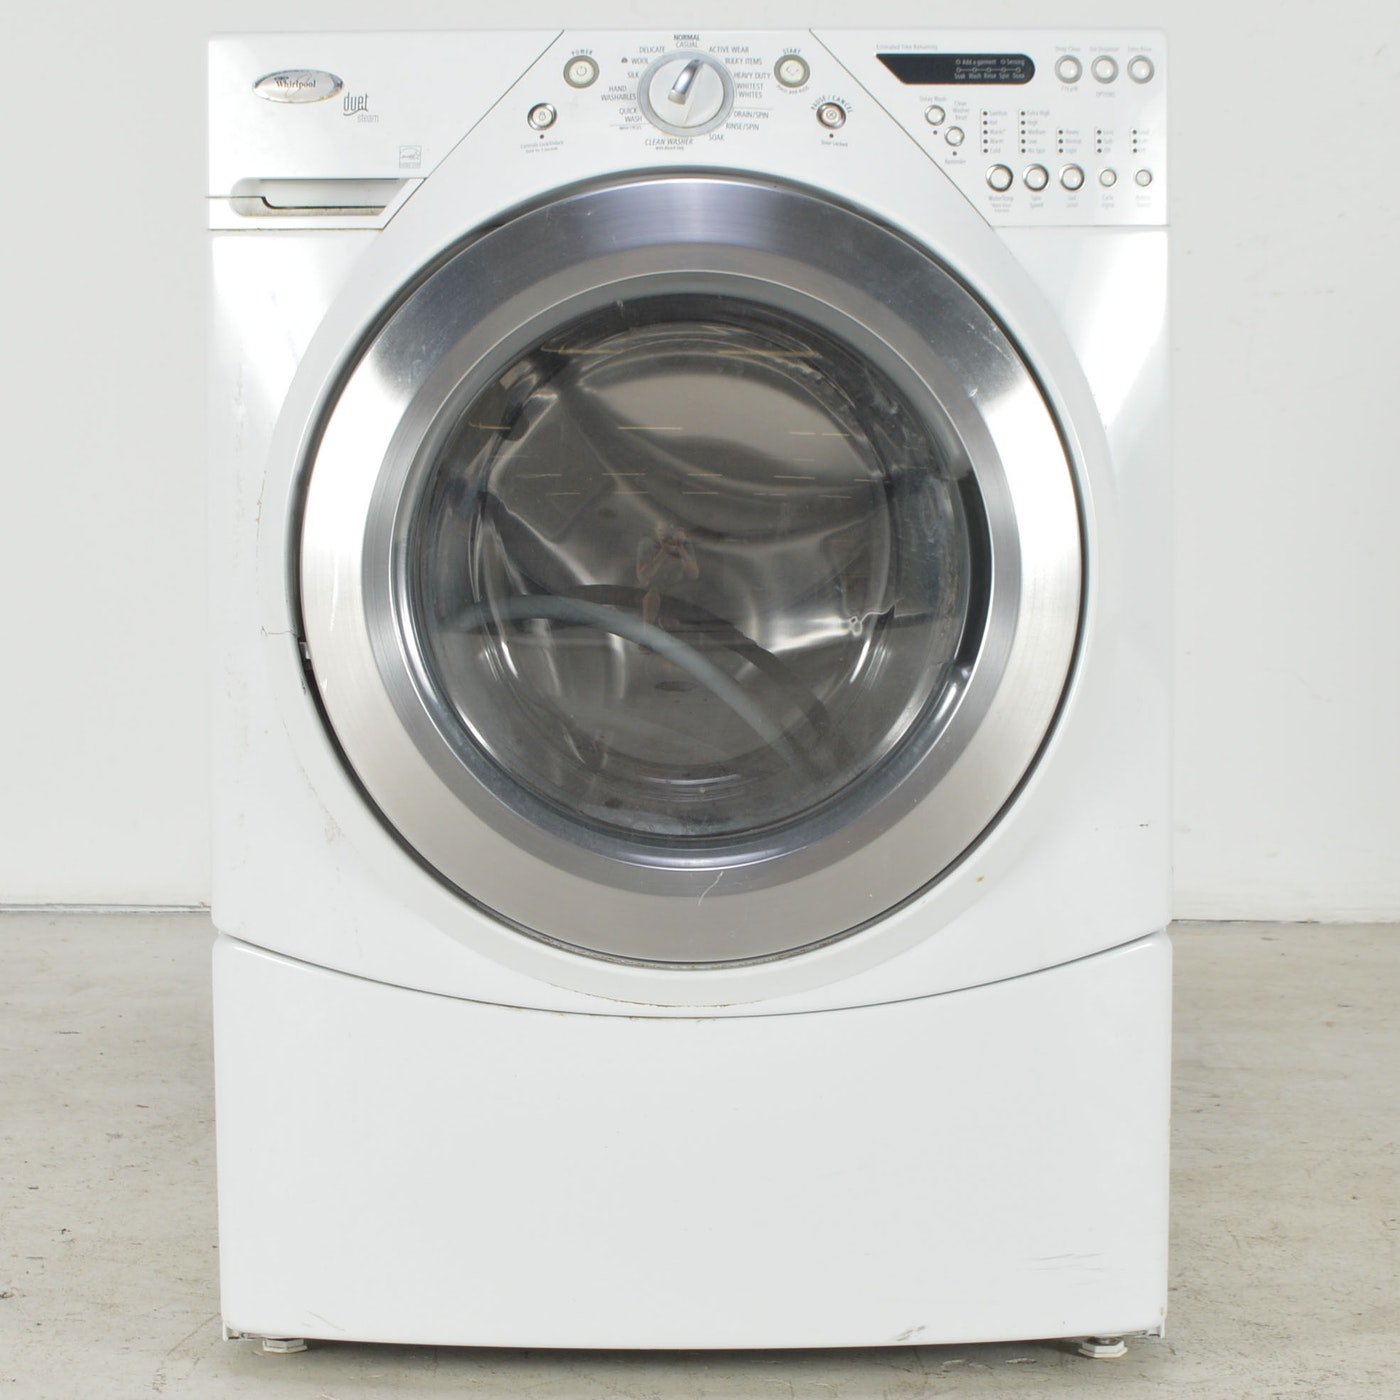 Whirlpool Duet Steam Front-Loading Washer : EBTH